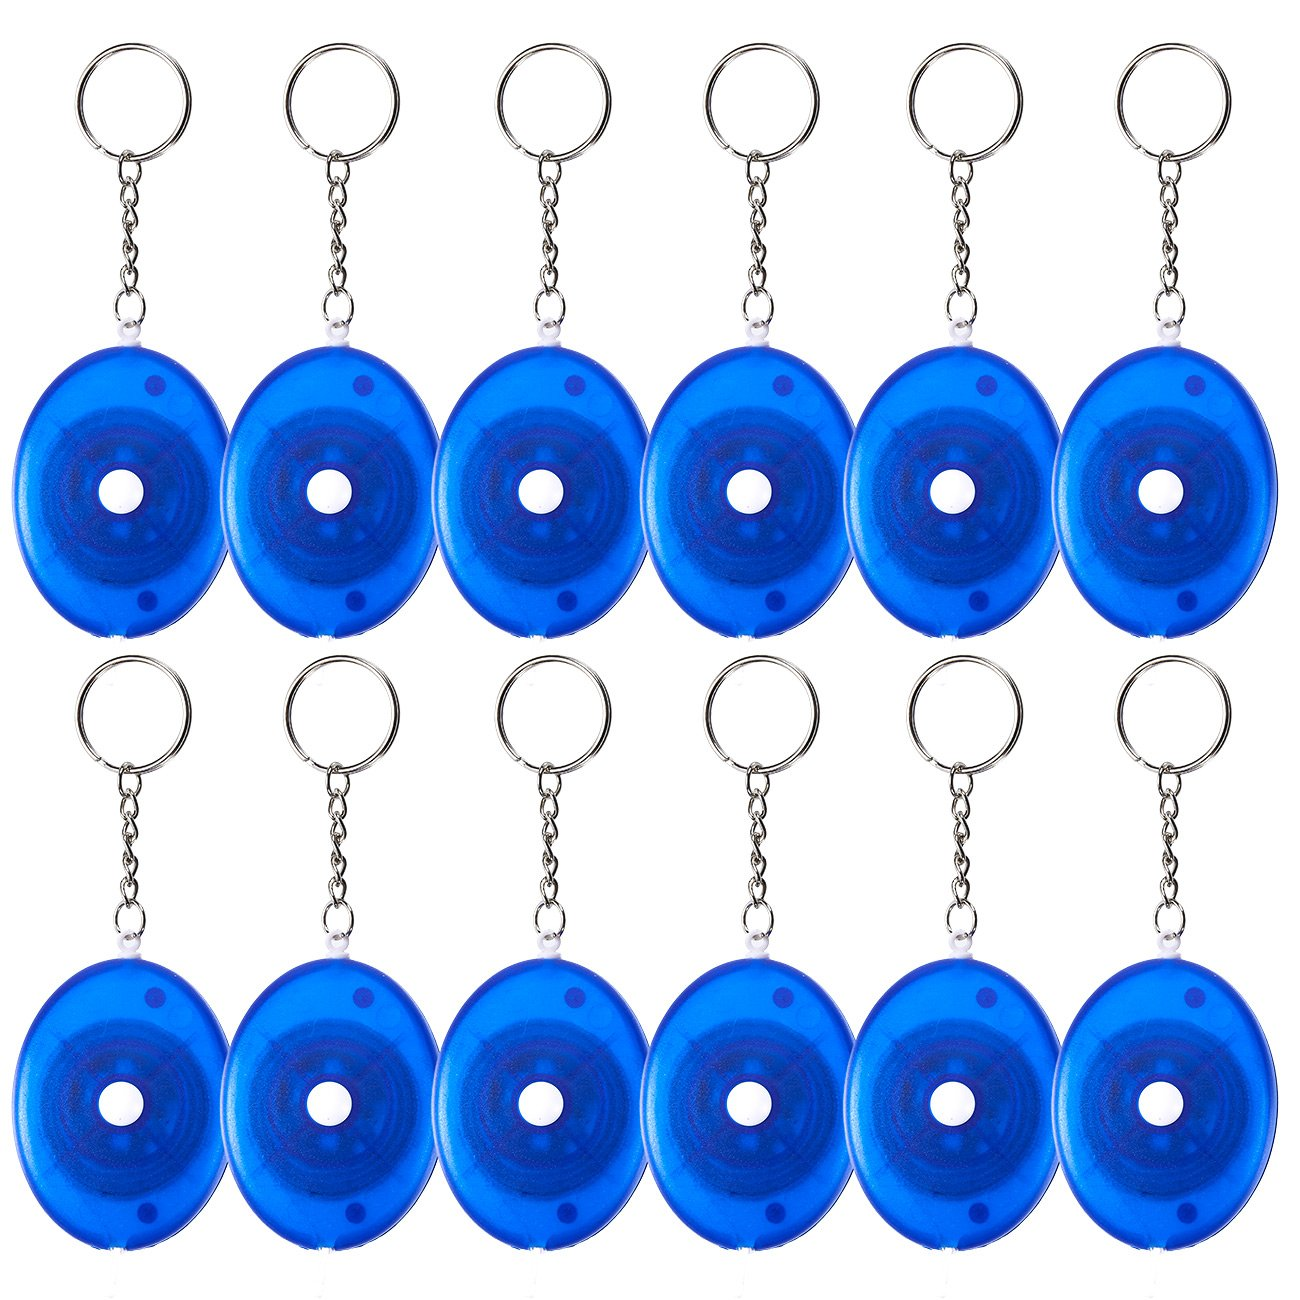 Retractable Tape Measure Keychain - 12-Pack Soft Tailor Tape Measure with Push-Button, Double-Sided Sewing Tape, Blue, 60 Inches Juvale